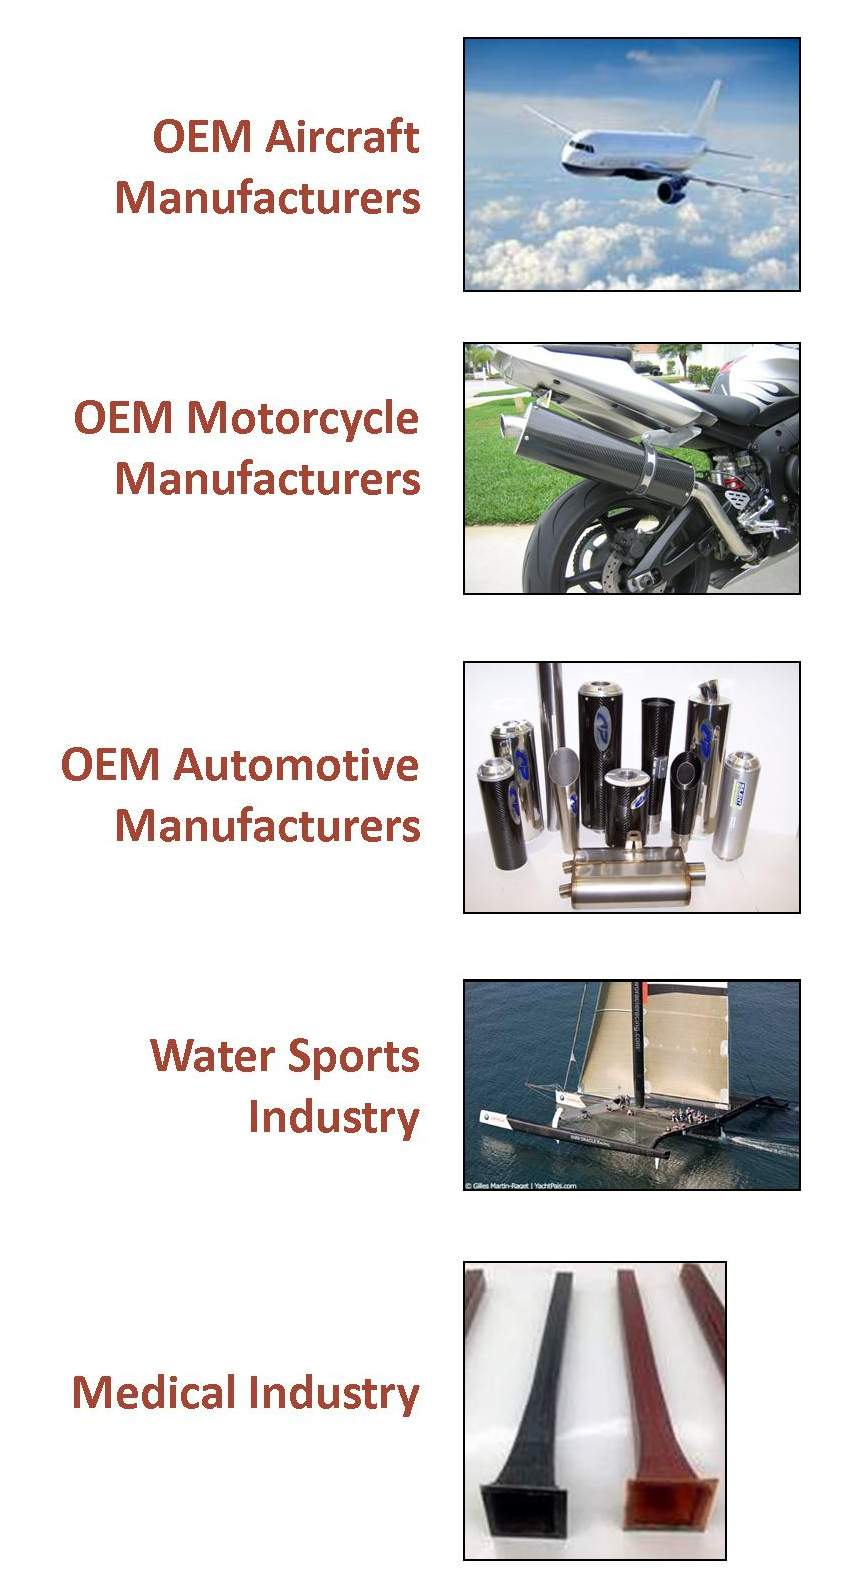 Advanced Composite Materials, Inc., A-C-M.com, produces carbon fiber products for the automative, motorcycle and aerospace industries.